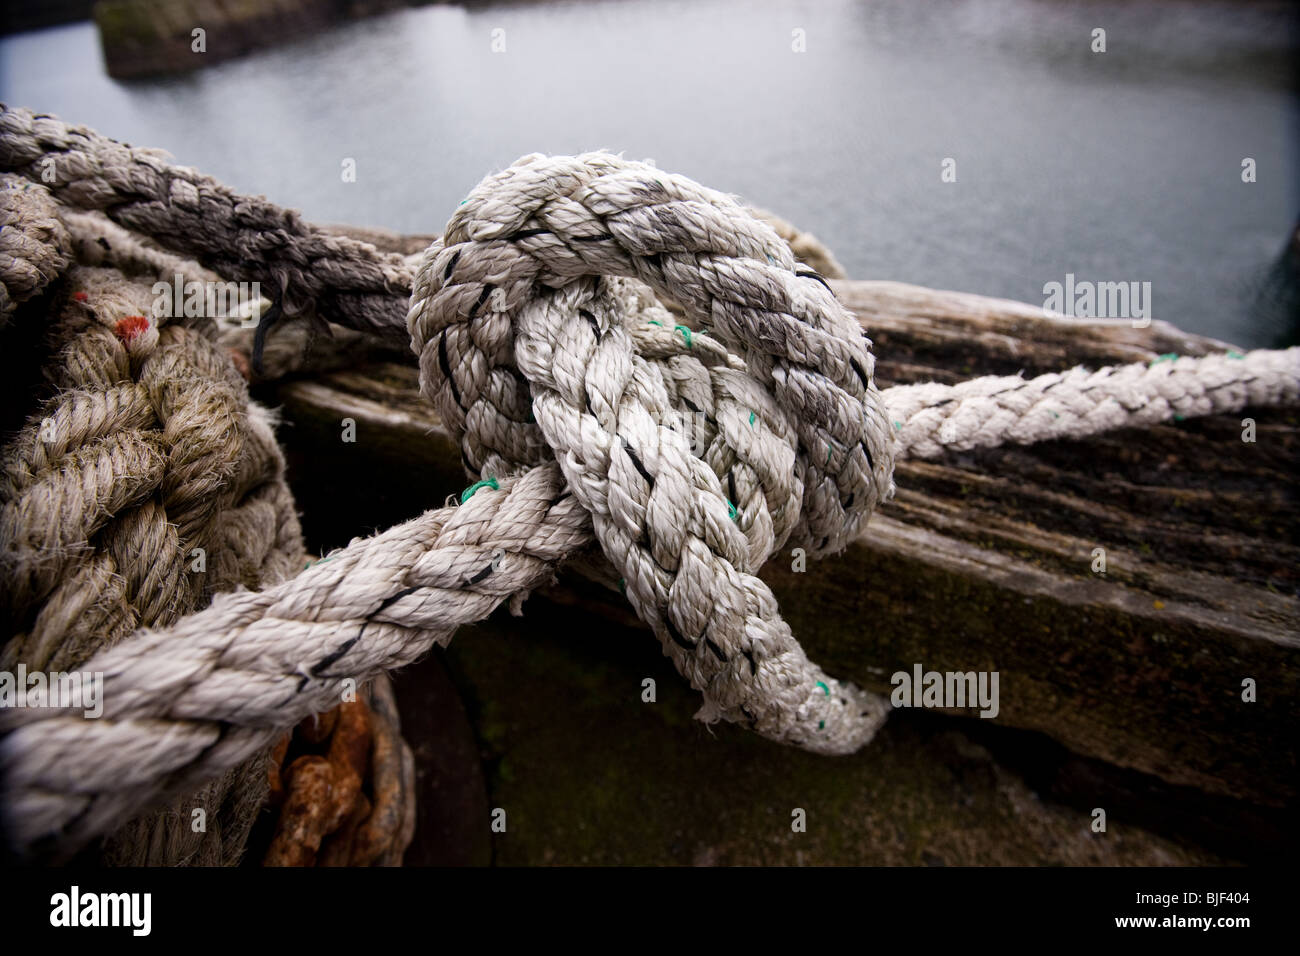 Knott & Rope, St Abbs, Eyemouth, Berwickshire, Angleterre Photo Stock